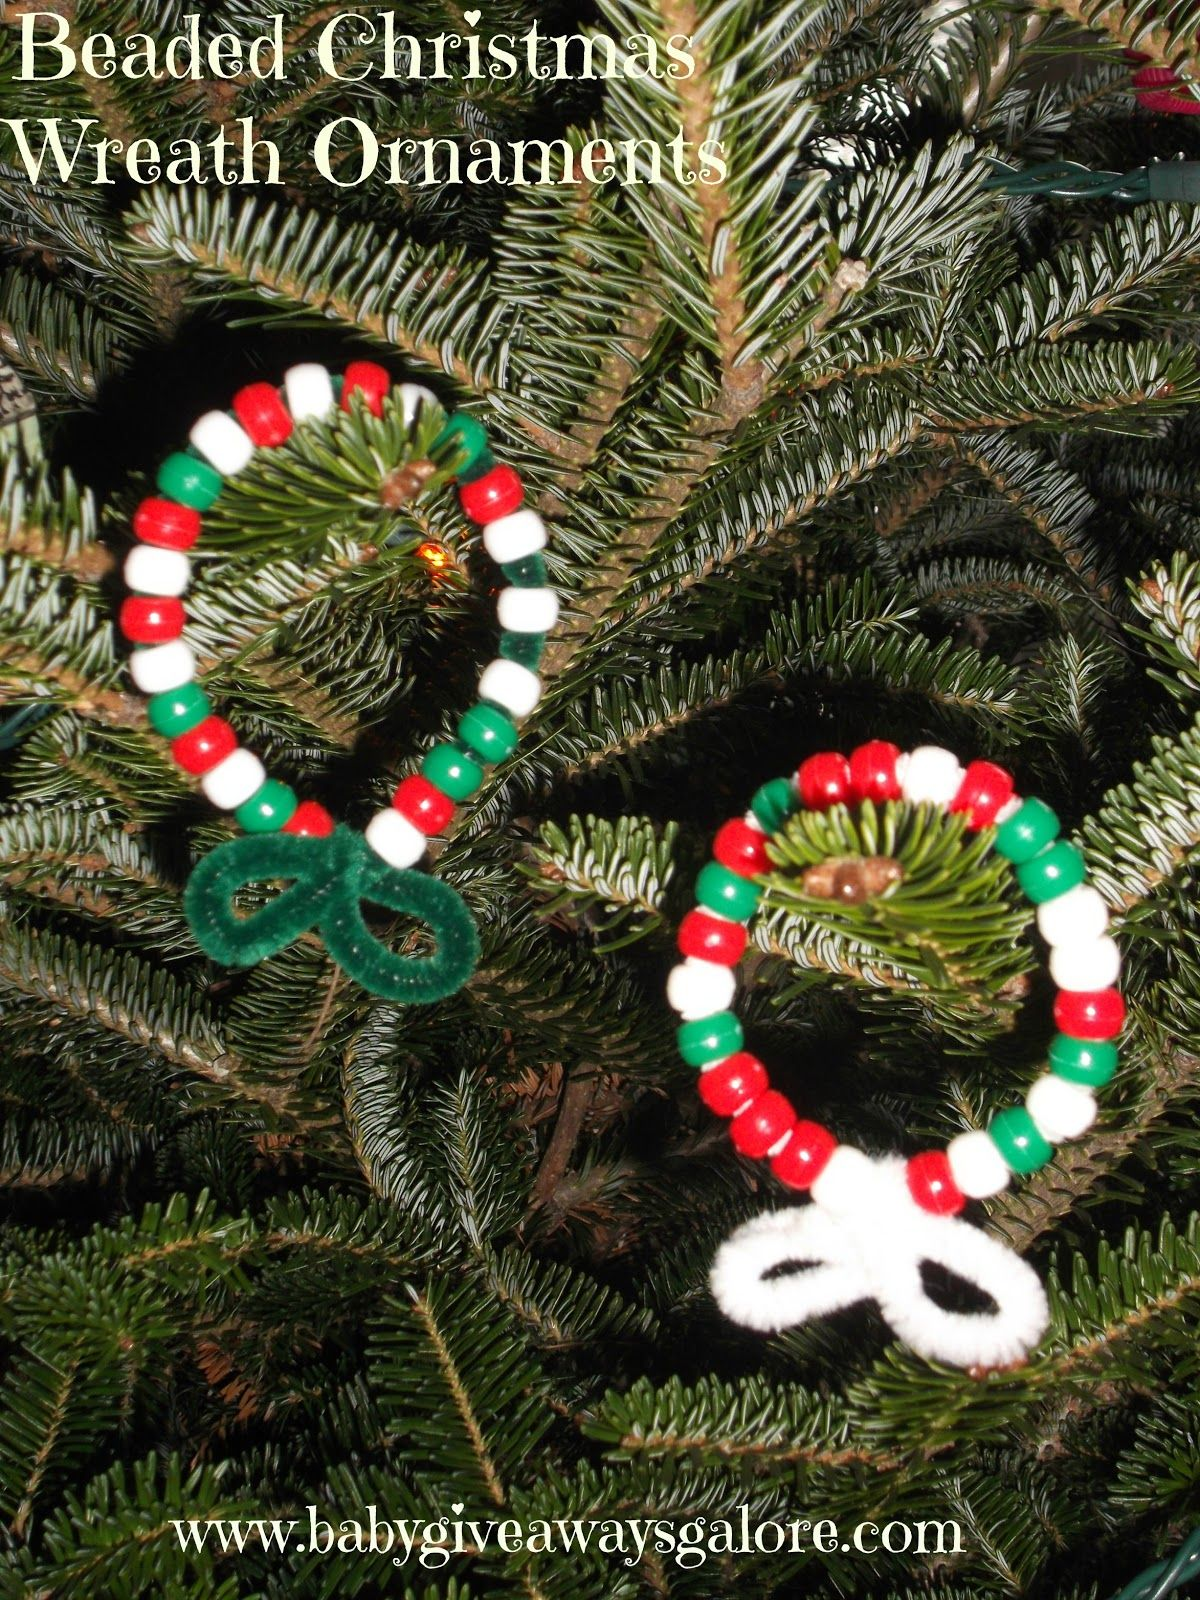 Beaded Christmas Wreath Ornaments Via @Helen Davidson Giveaways Galore Tenley